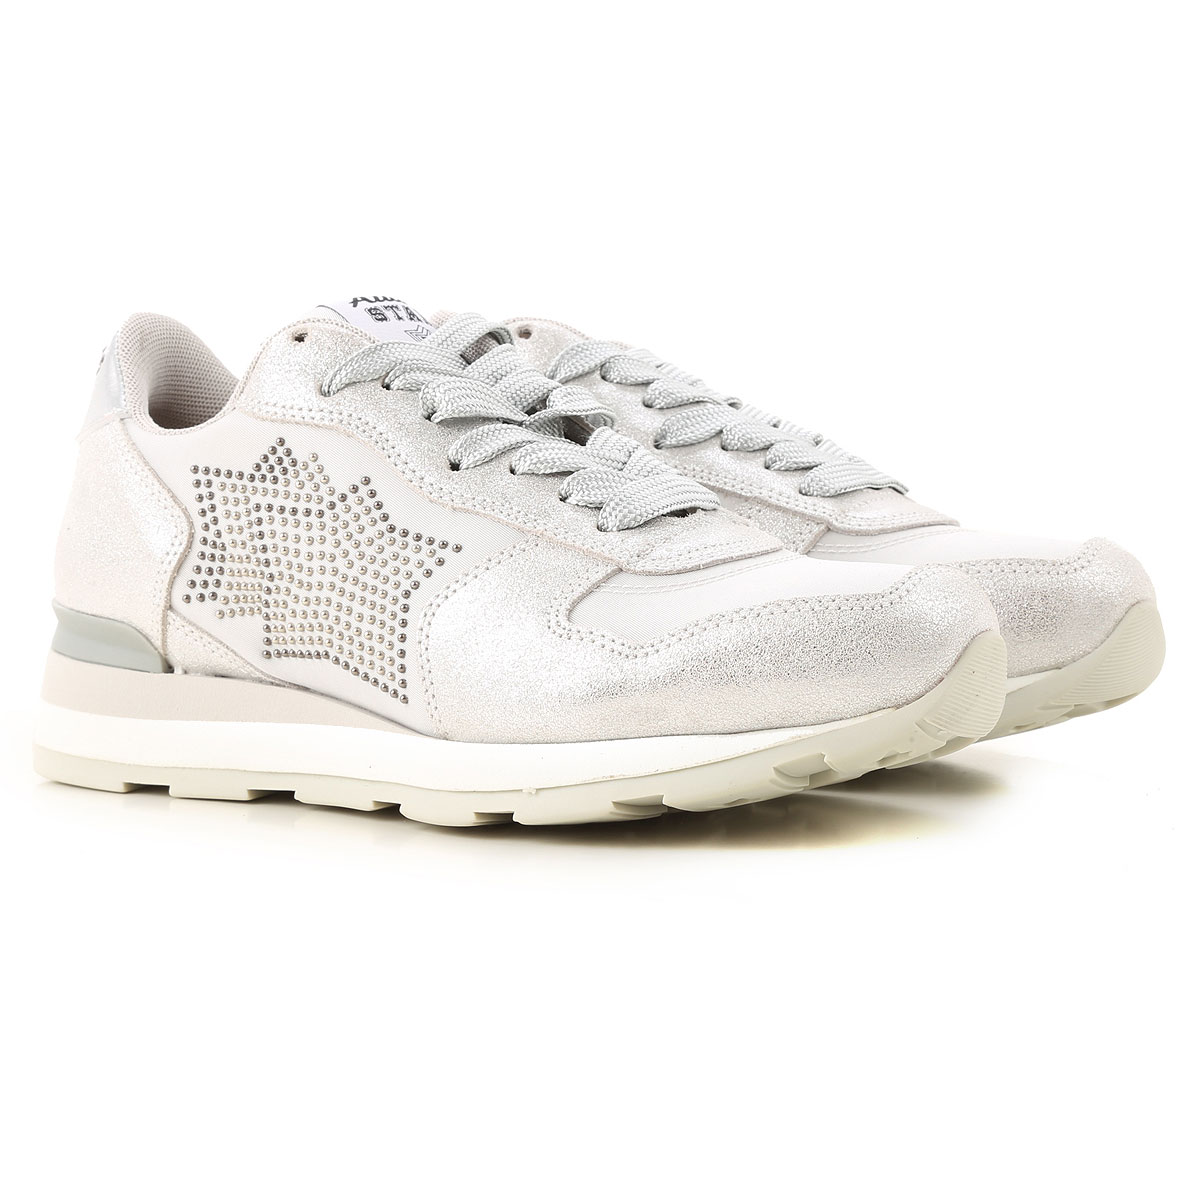 Atlantic Stars Sneakers for Women On Sale in Outlet, Silver, Metallic Leather, 2019, 5 6 7 9